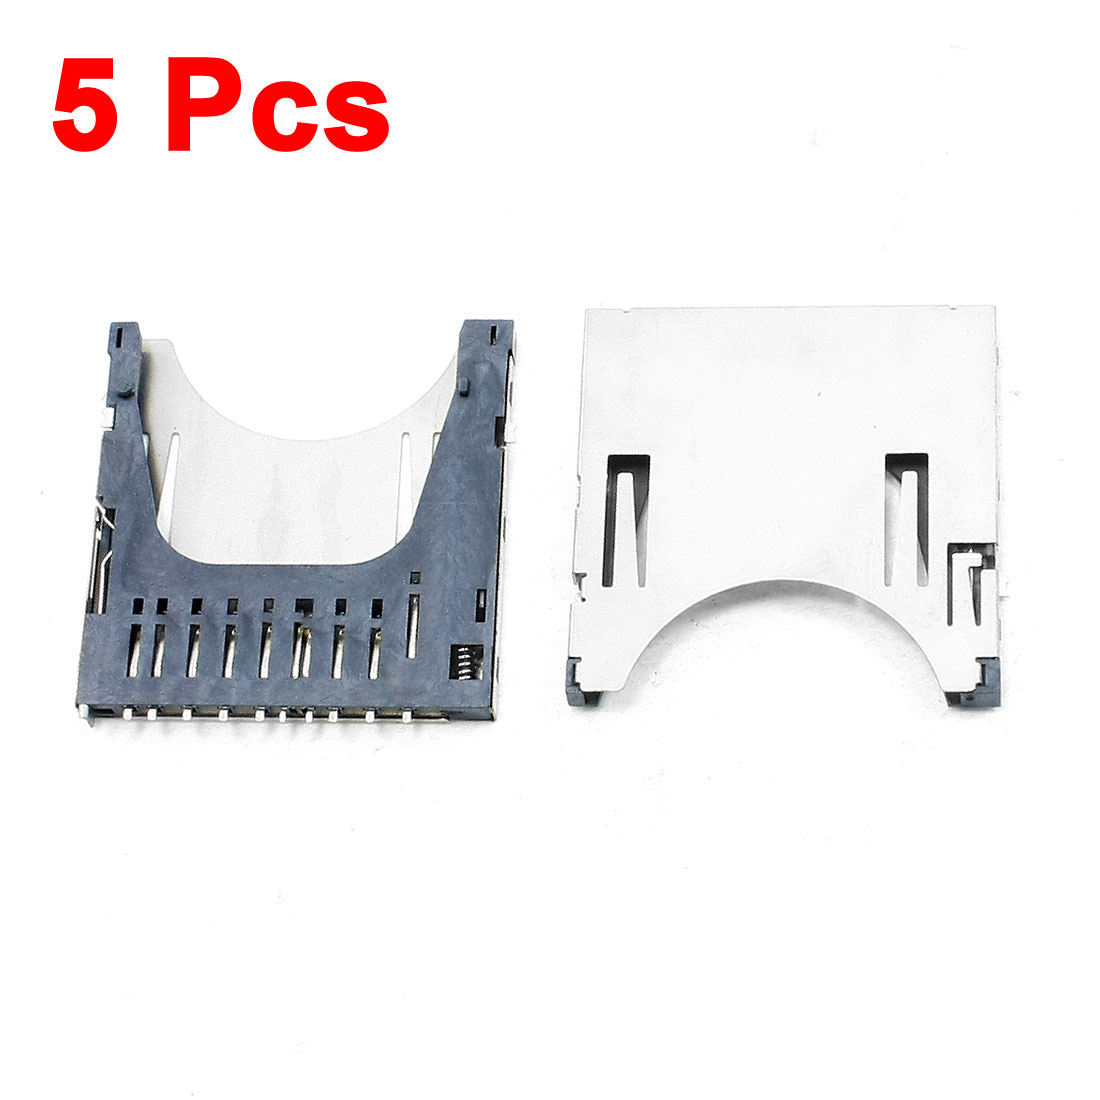 5 Pcs SD Memory Card Sockets Connectors Replacements 29 x 28.5 x 2.5mm